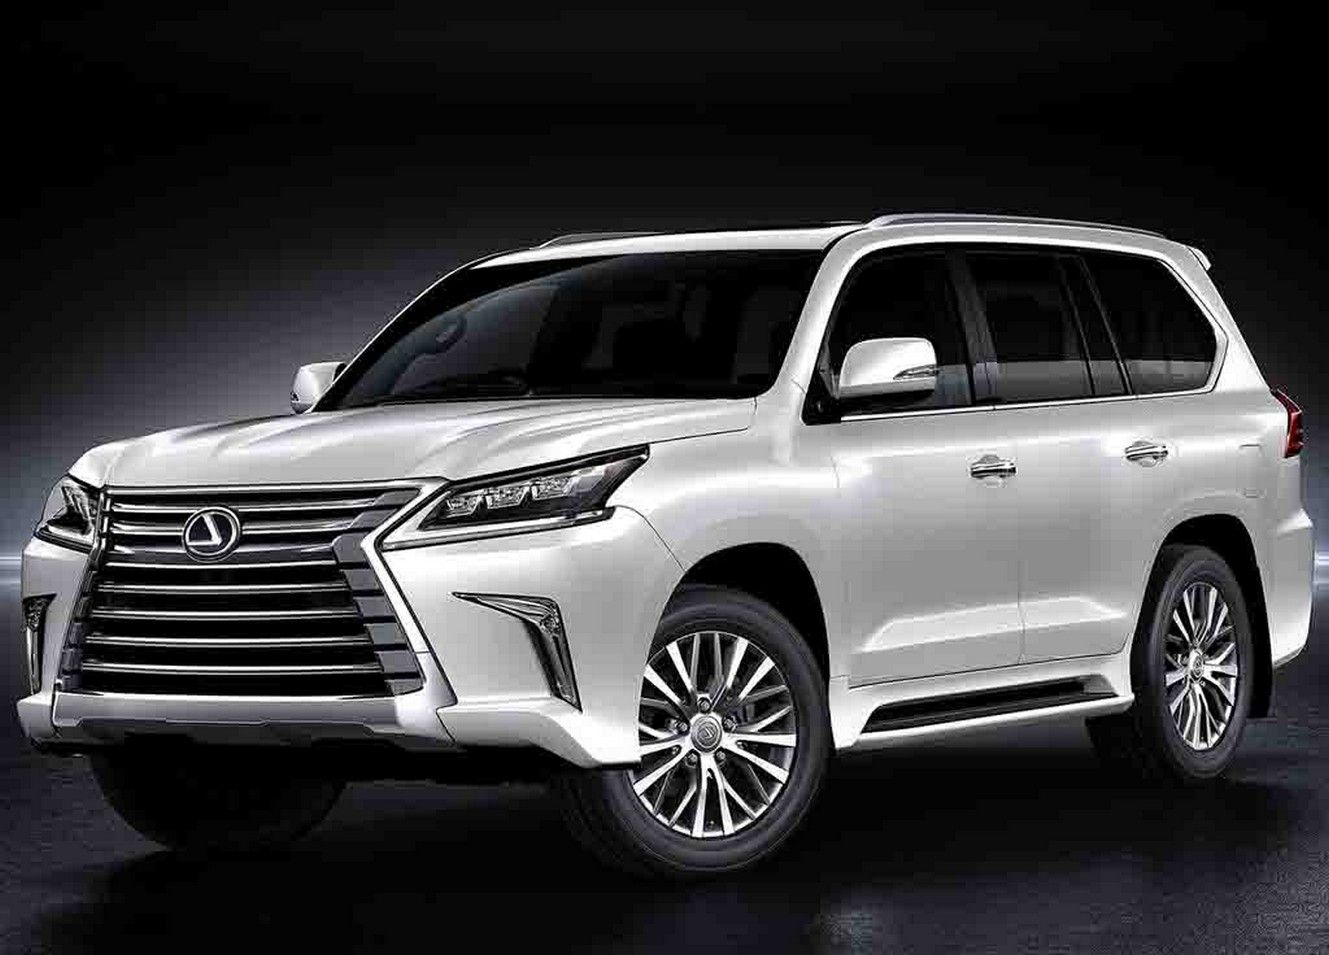 2019 lexus lx 570 suv redesign lexus cars and trucks pinterest cars and vehicle. Black Bedroom Furniture Sets. Home Design Ideas